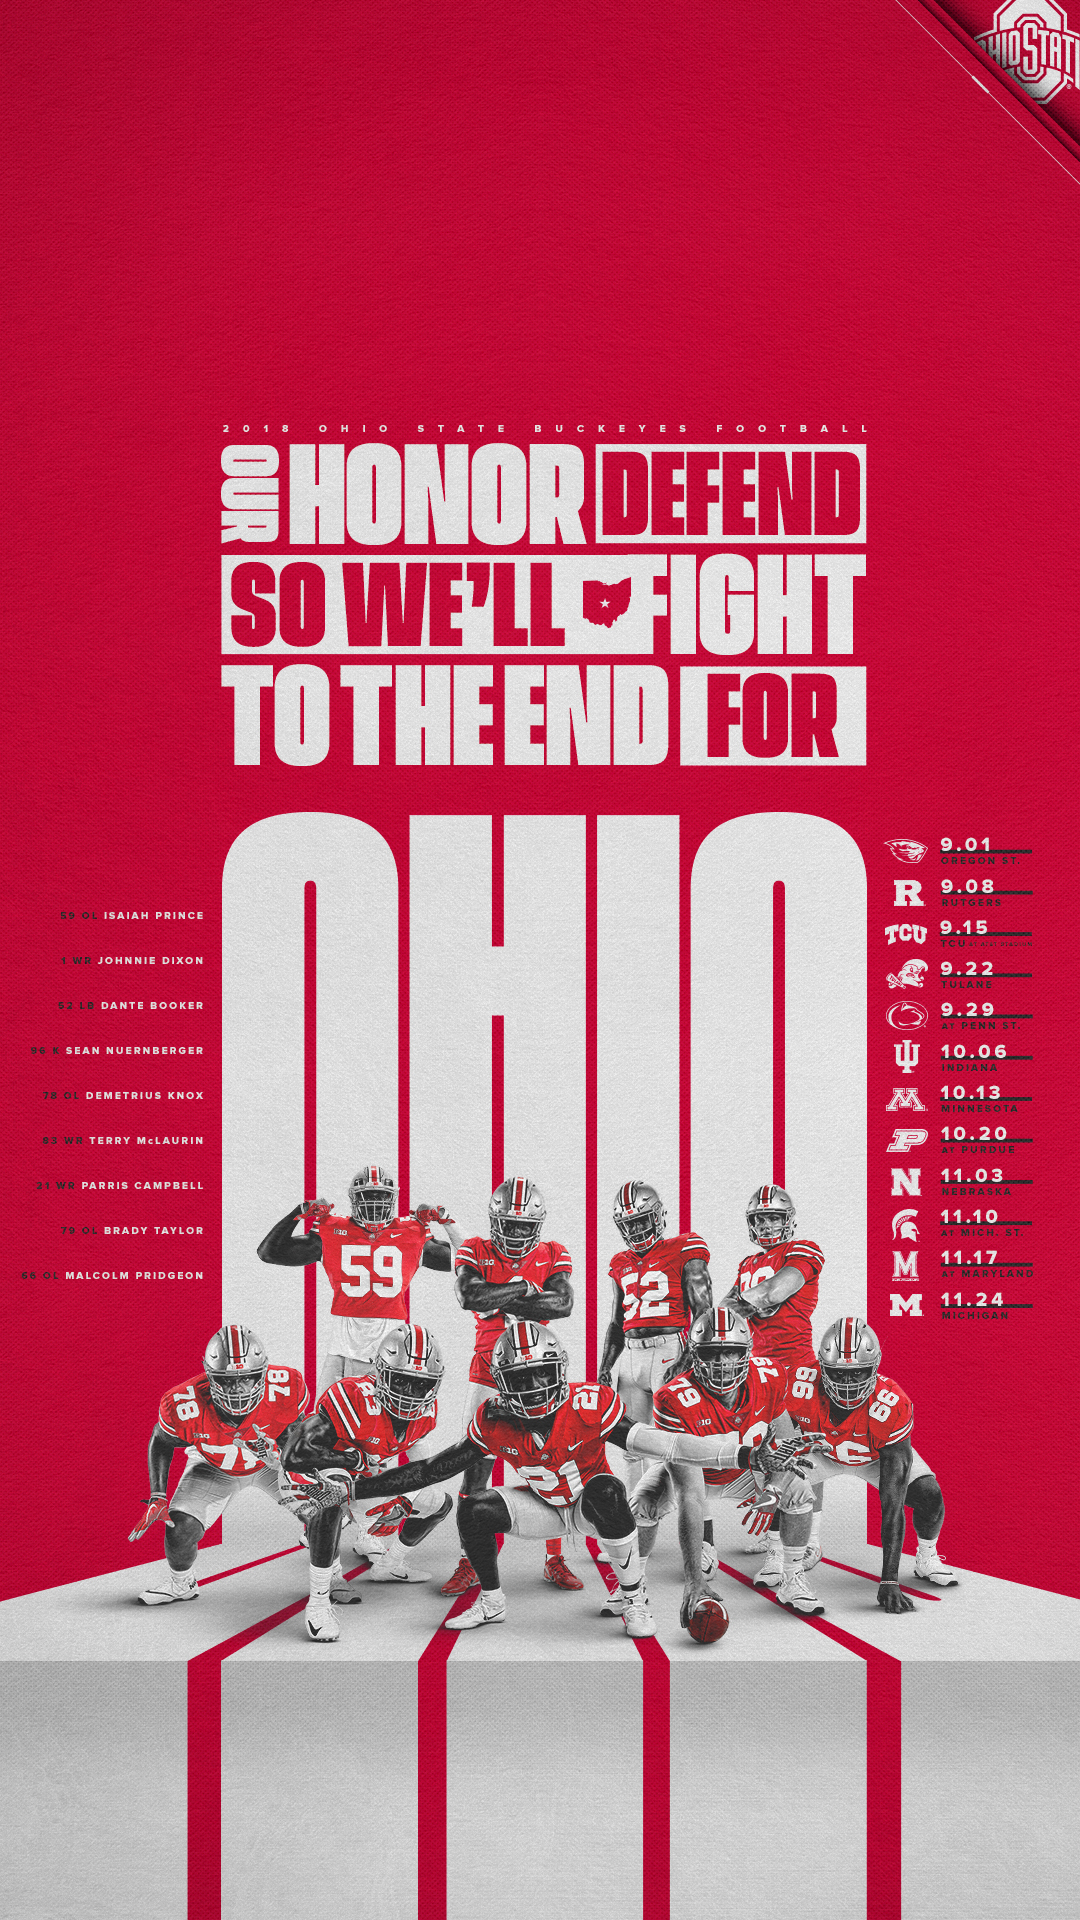 – Buckeyes Ohio Schedule Posters State